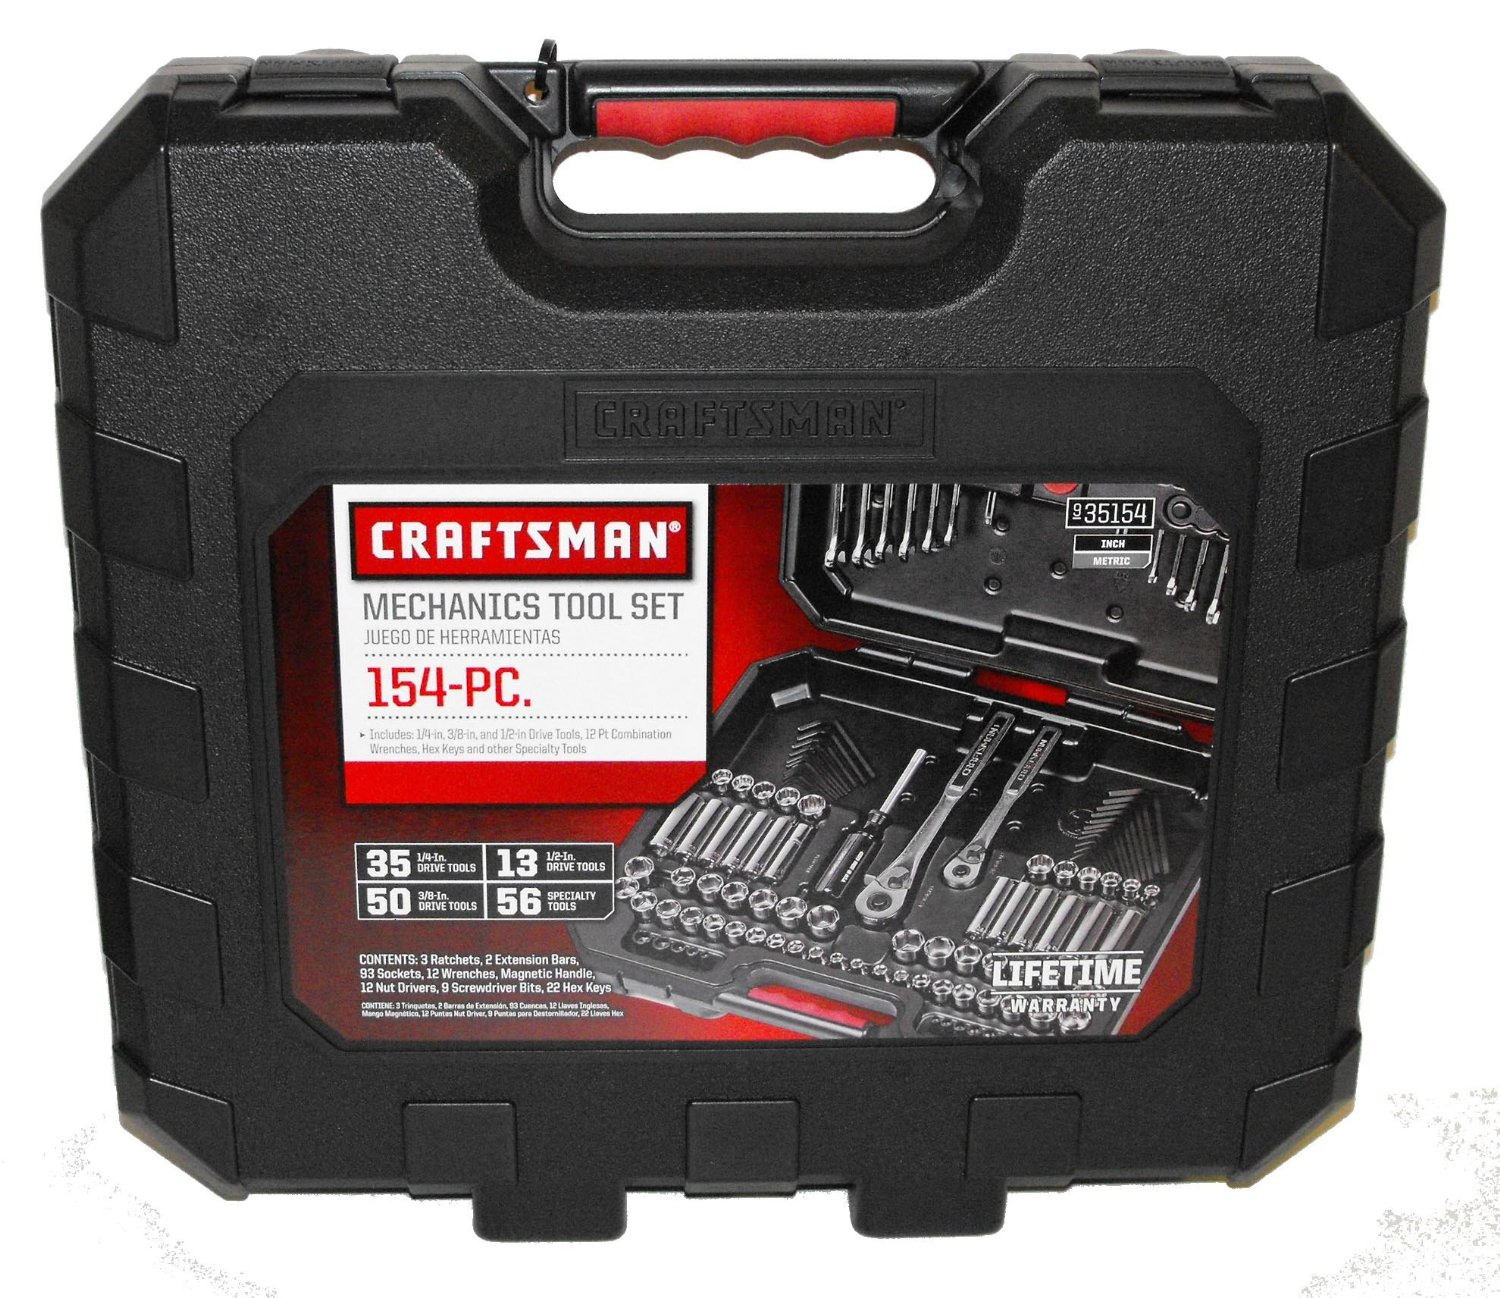 sears sells craftsman brand to stanley